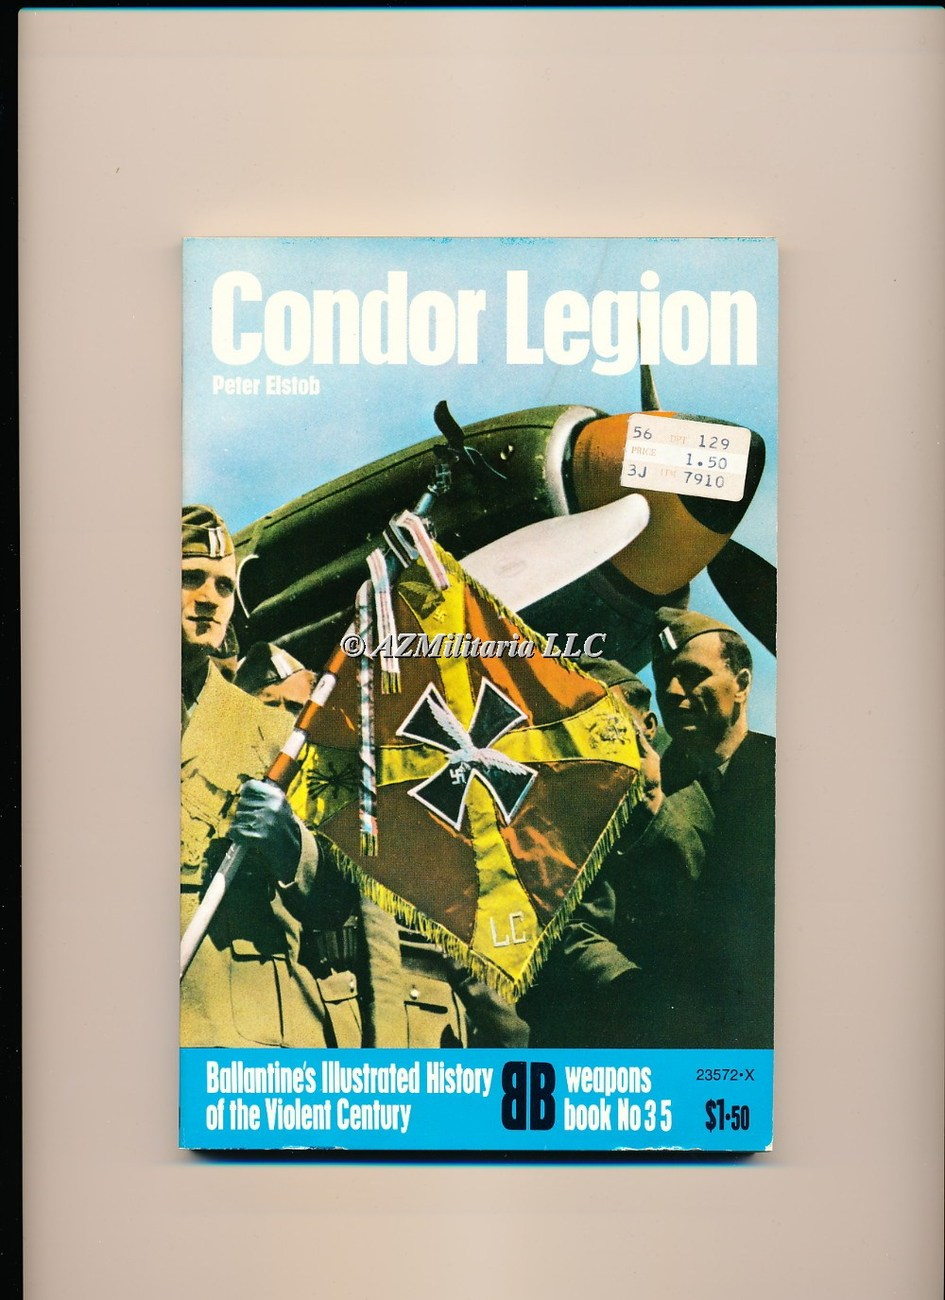 Condor Legion (Weapons Book, No 35)